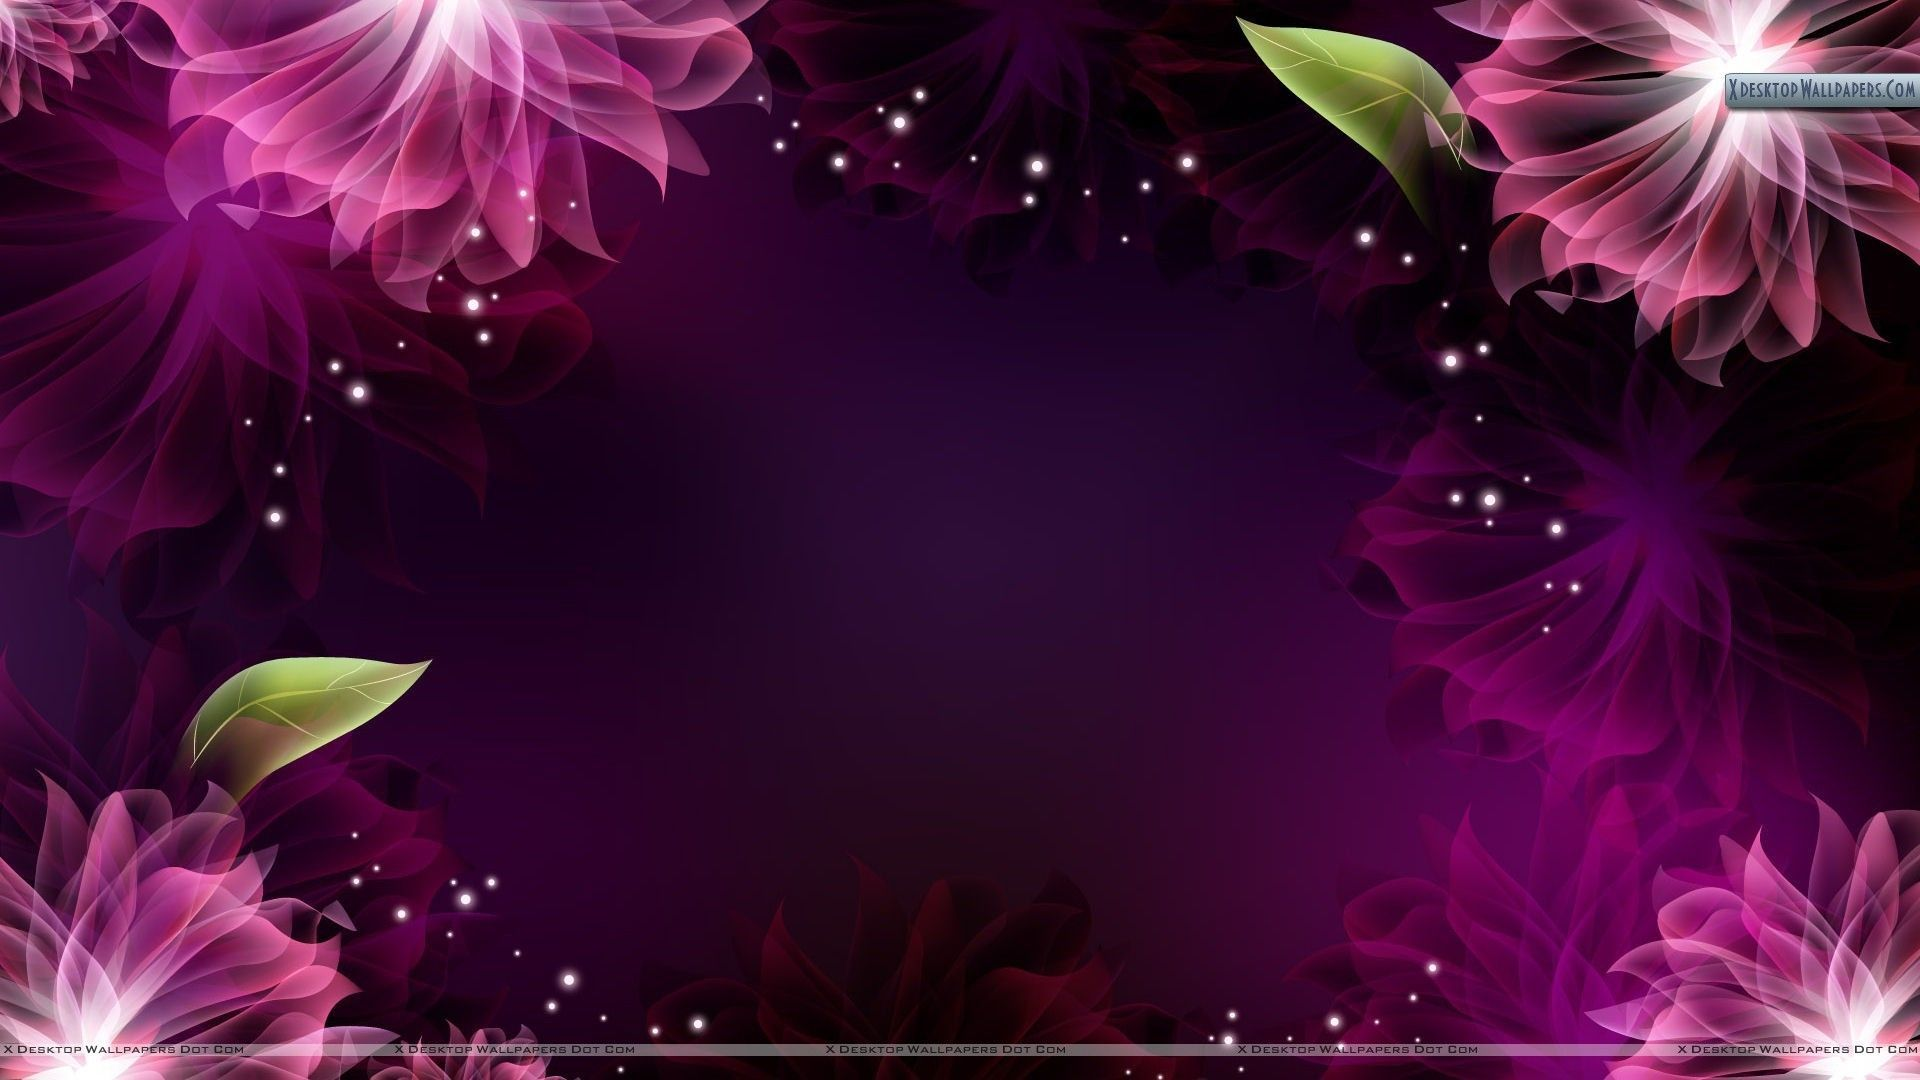 Backgrounds Flowers Image - Wallpaper Cave graphic download